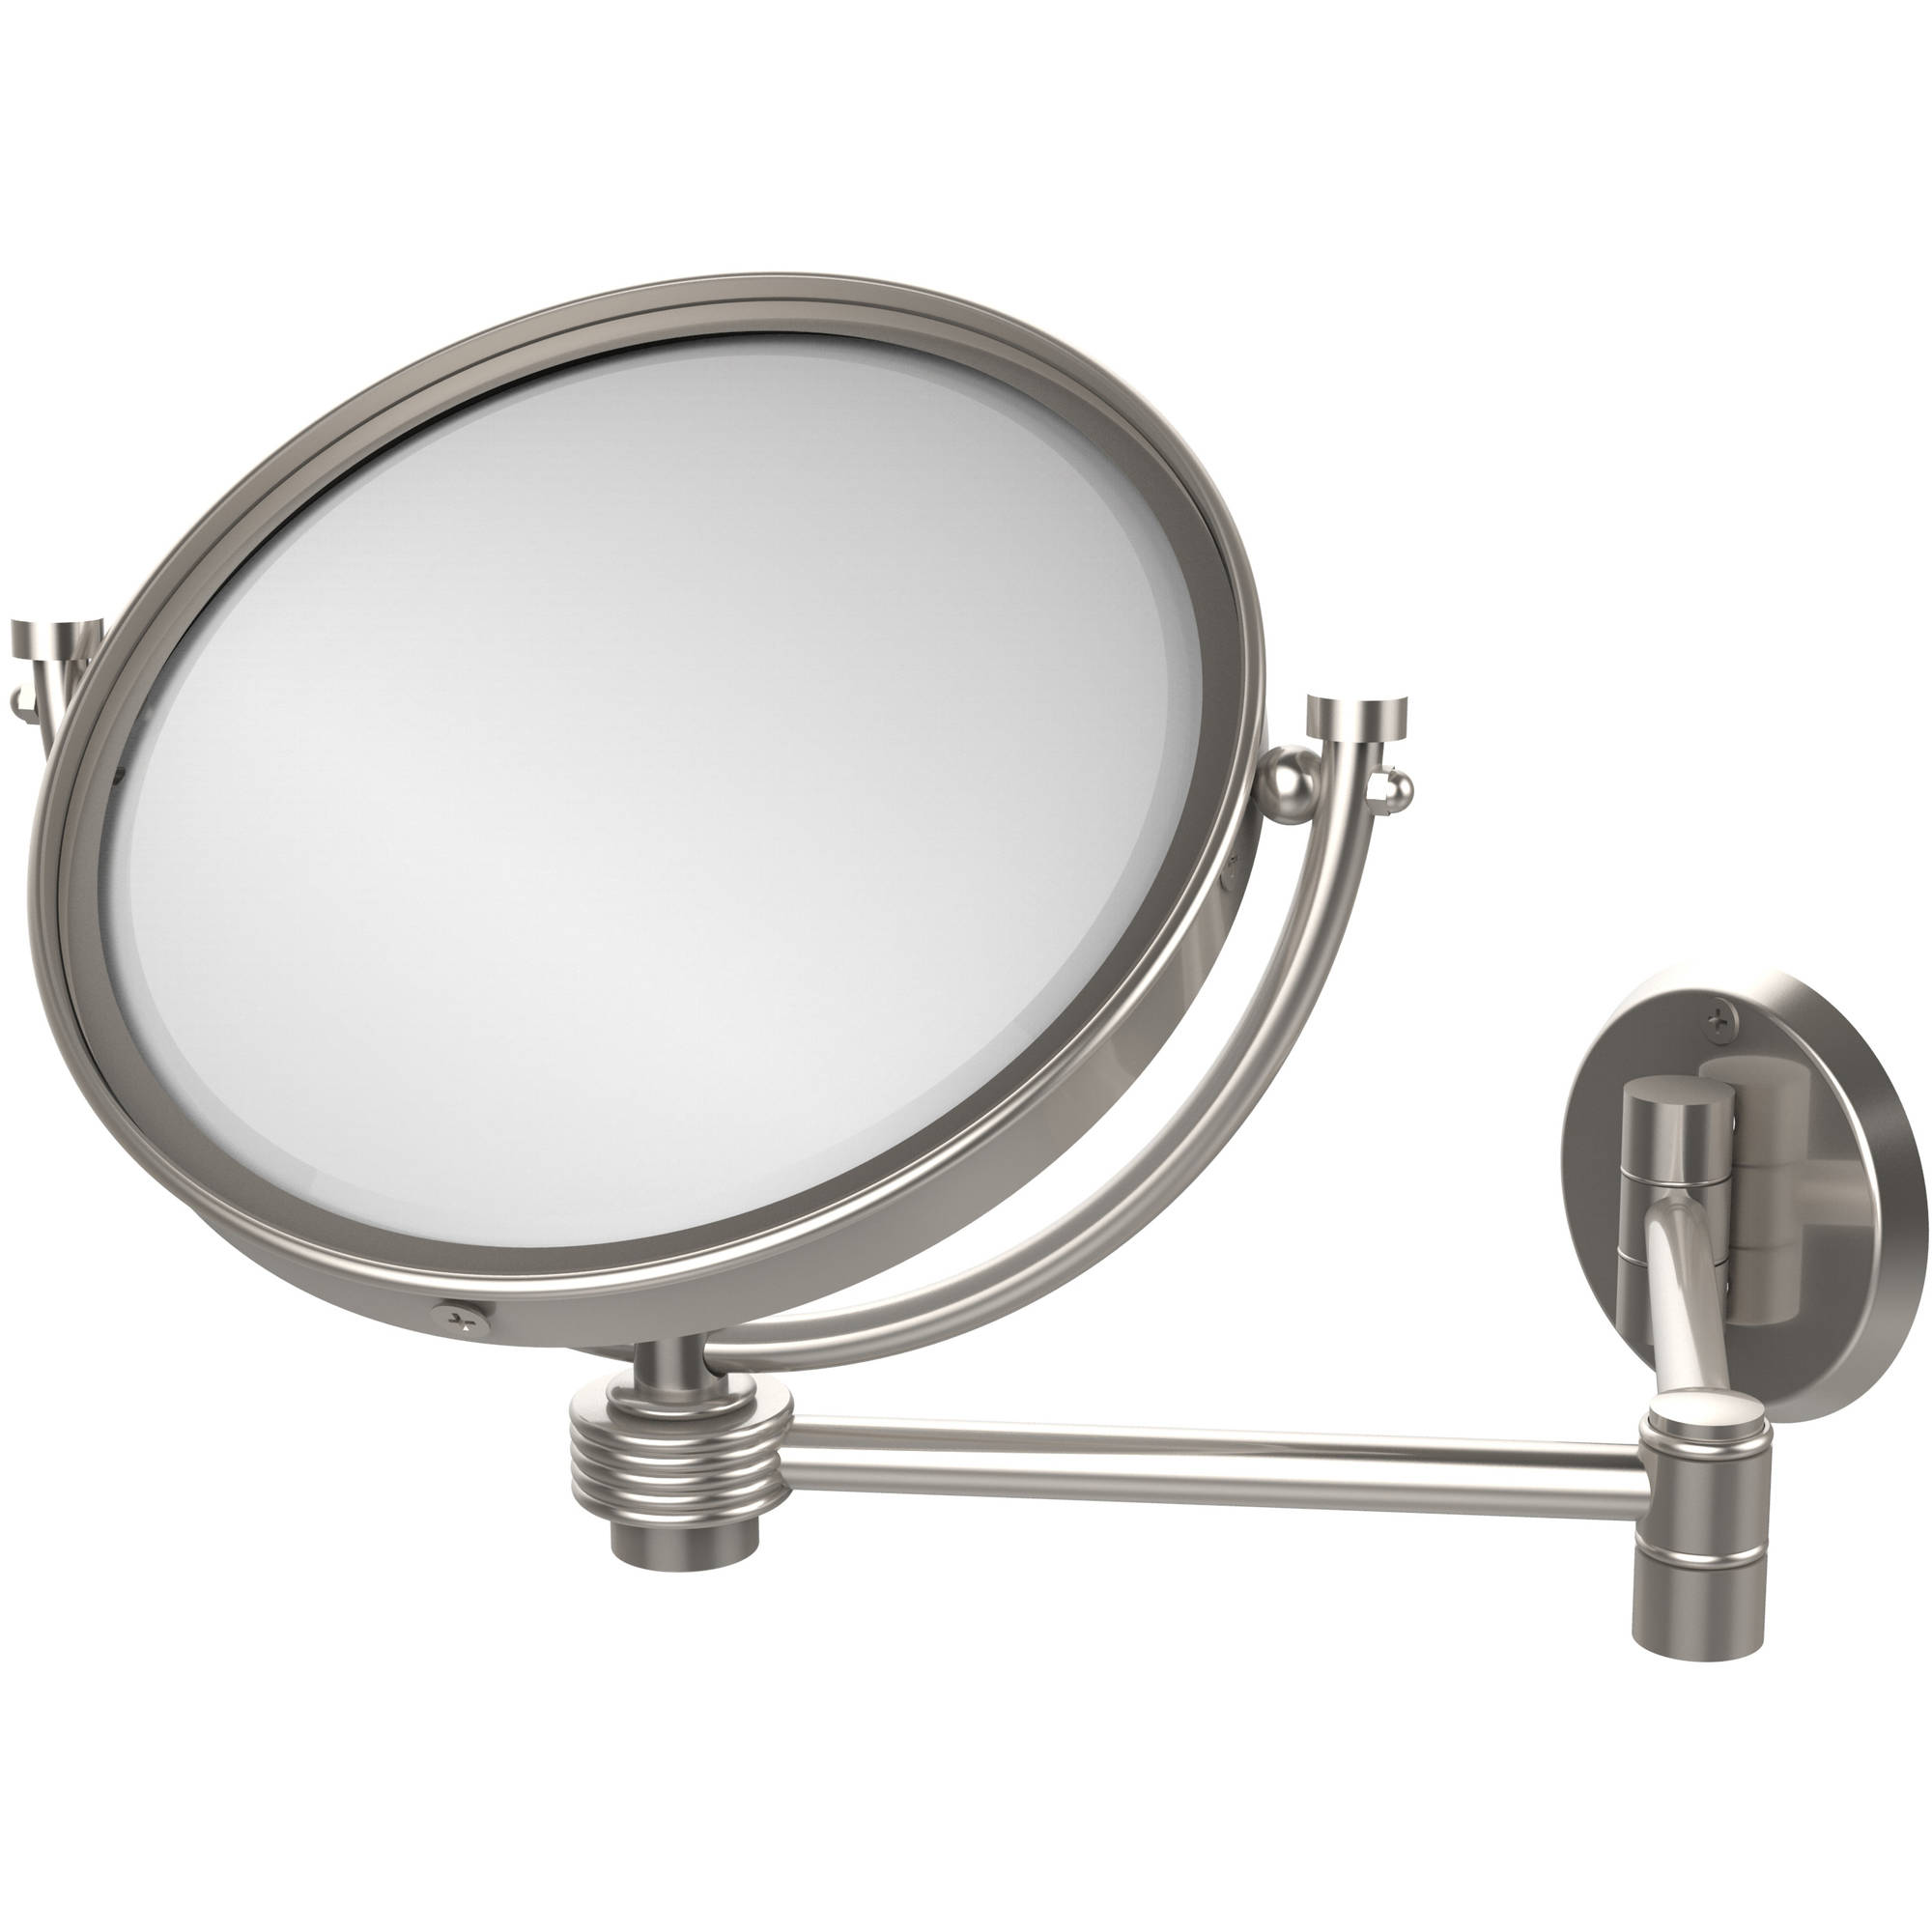 """8"""" Wall-Mounted Extending Make-Up Mirror, 2x Magnification with Groovy Accent (Build to Order)"""